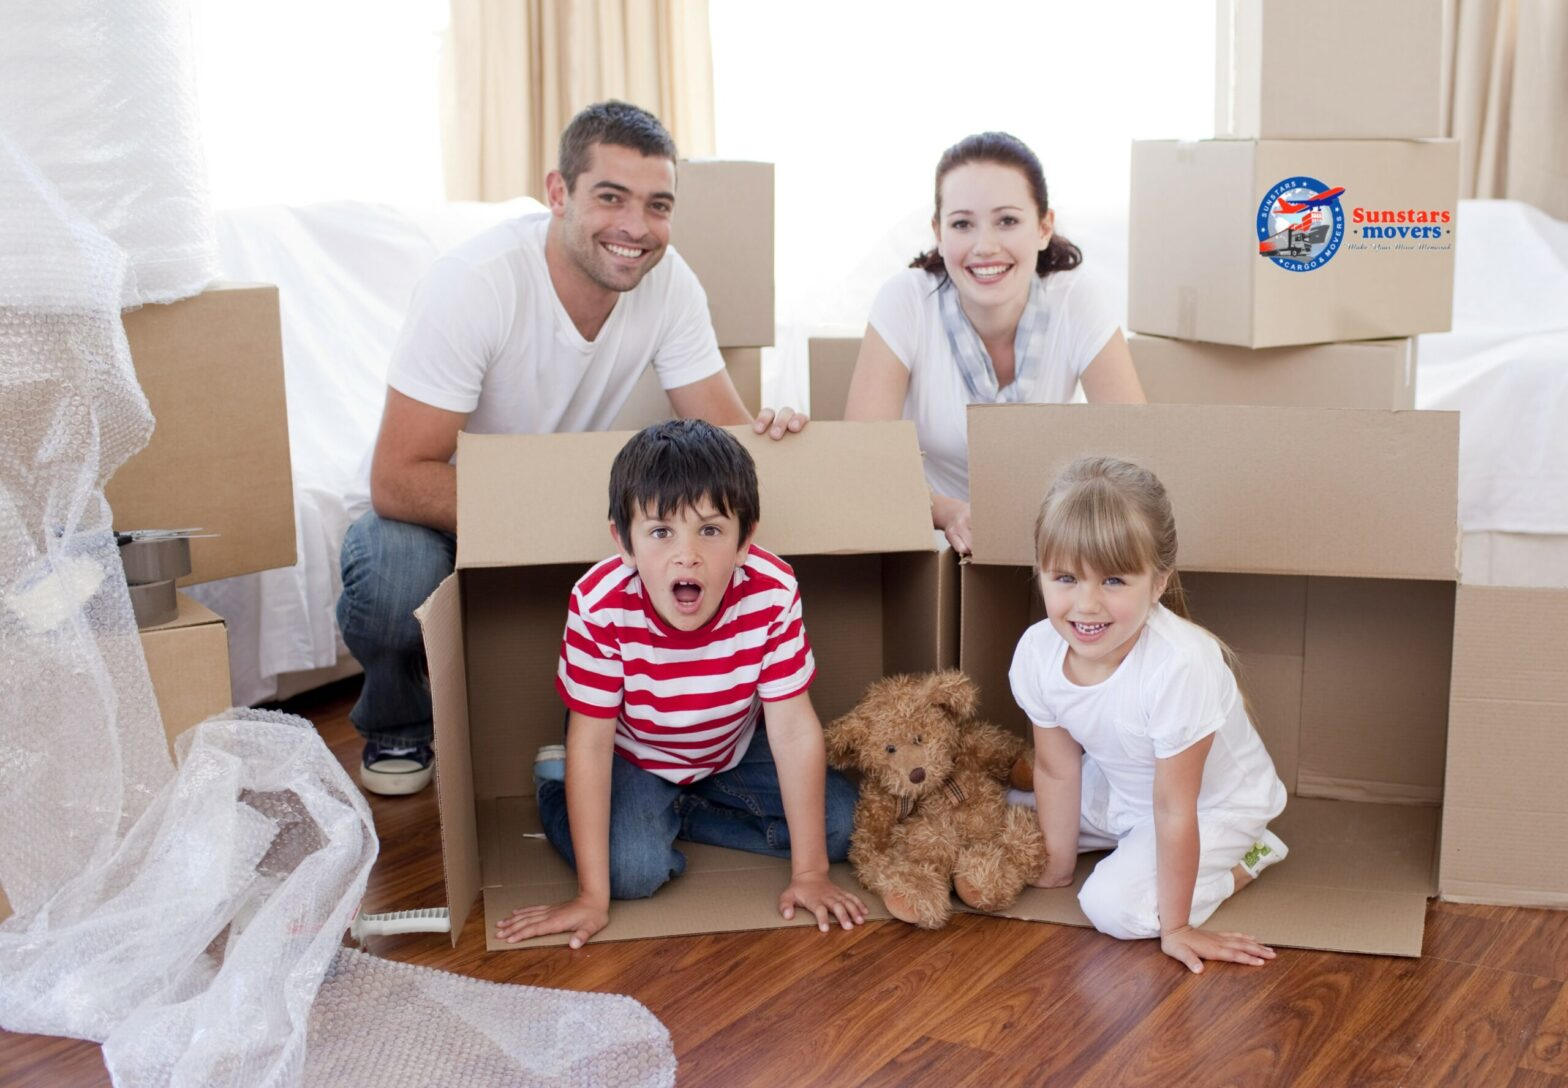 Best Local movers in Ajman at Sunstars movers